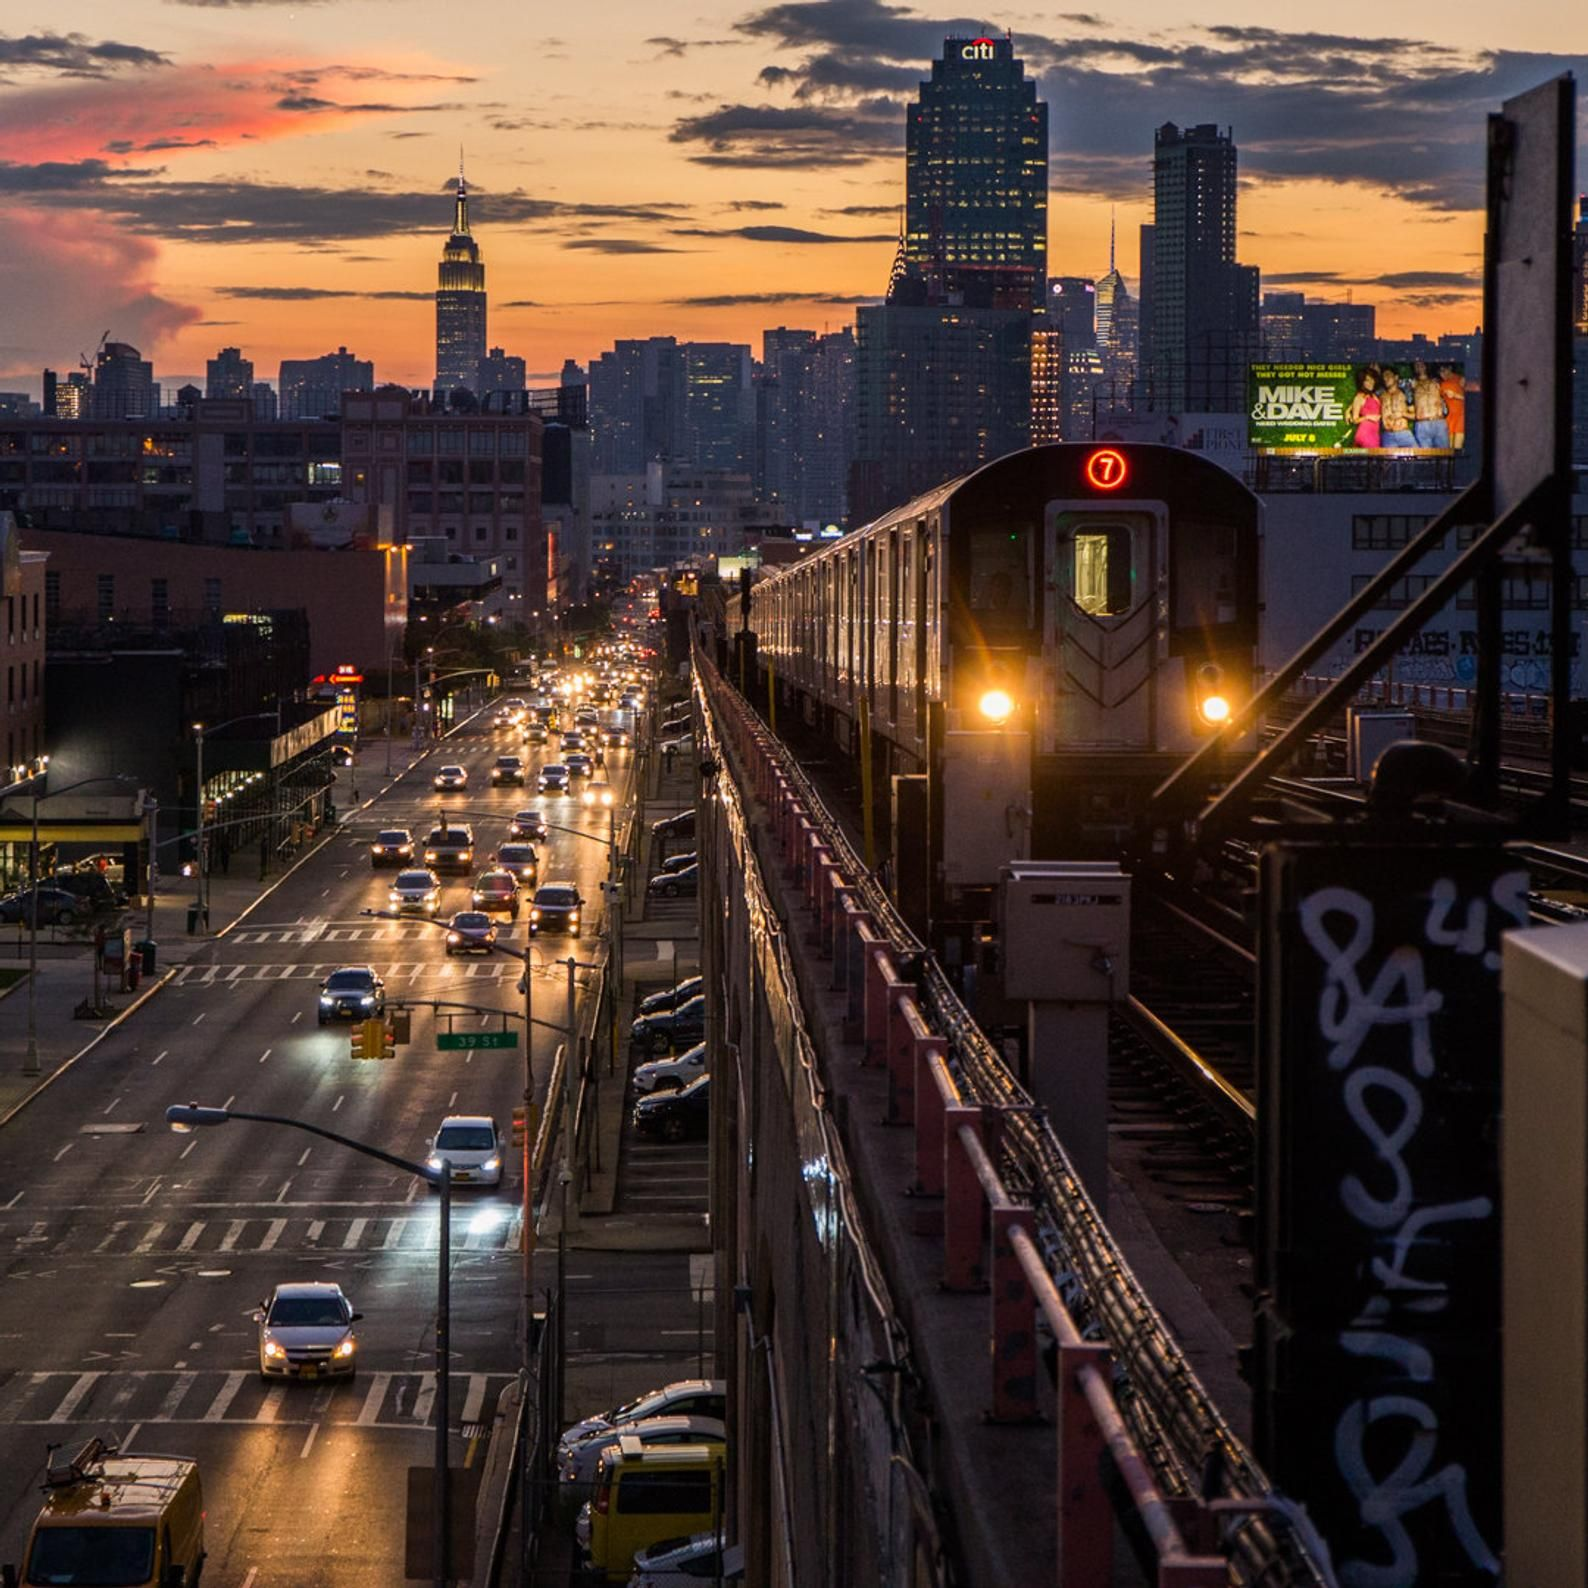 New York Skyline From Queens 7 Train Subway Mta At Sunset New York City Photography In 2020 City Photography New York City New York Photography